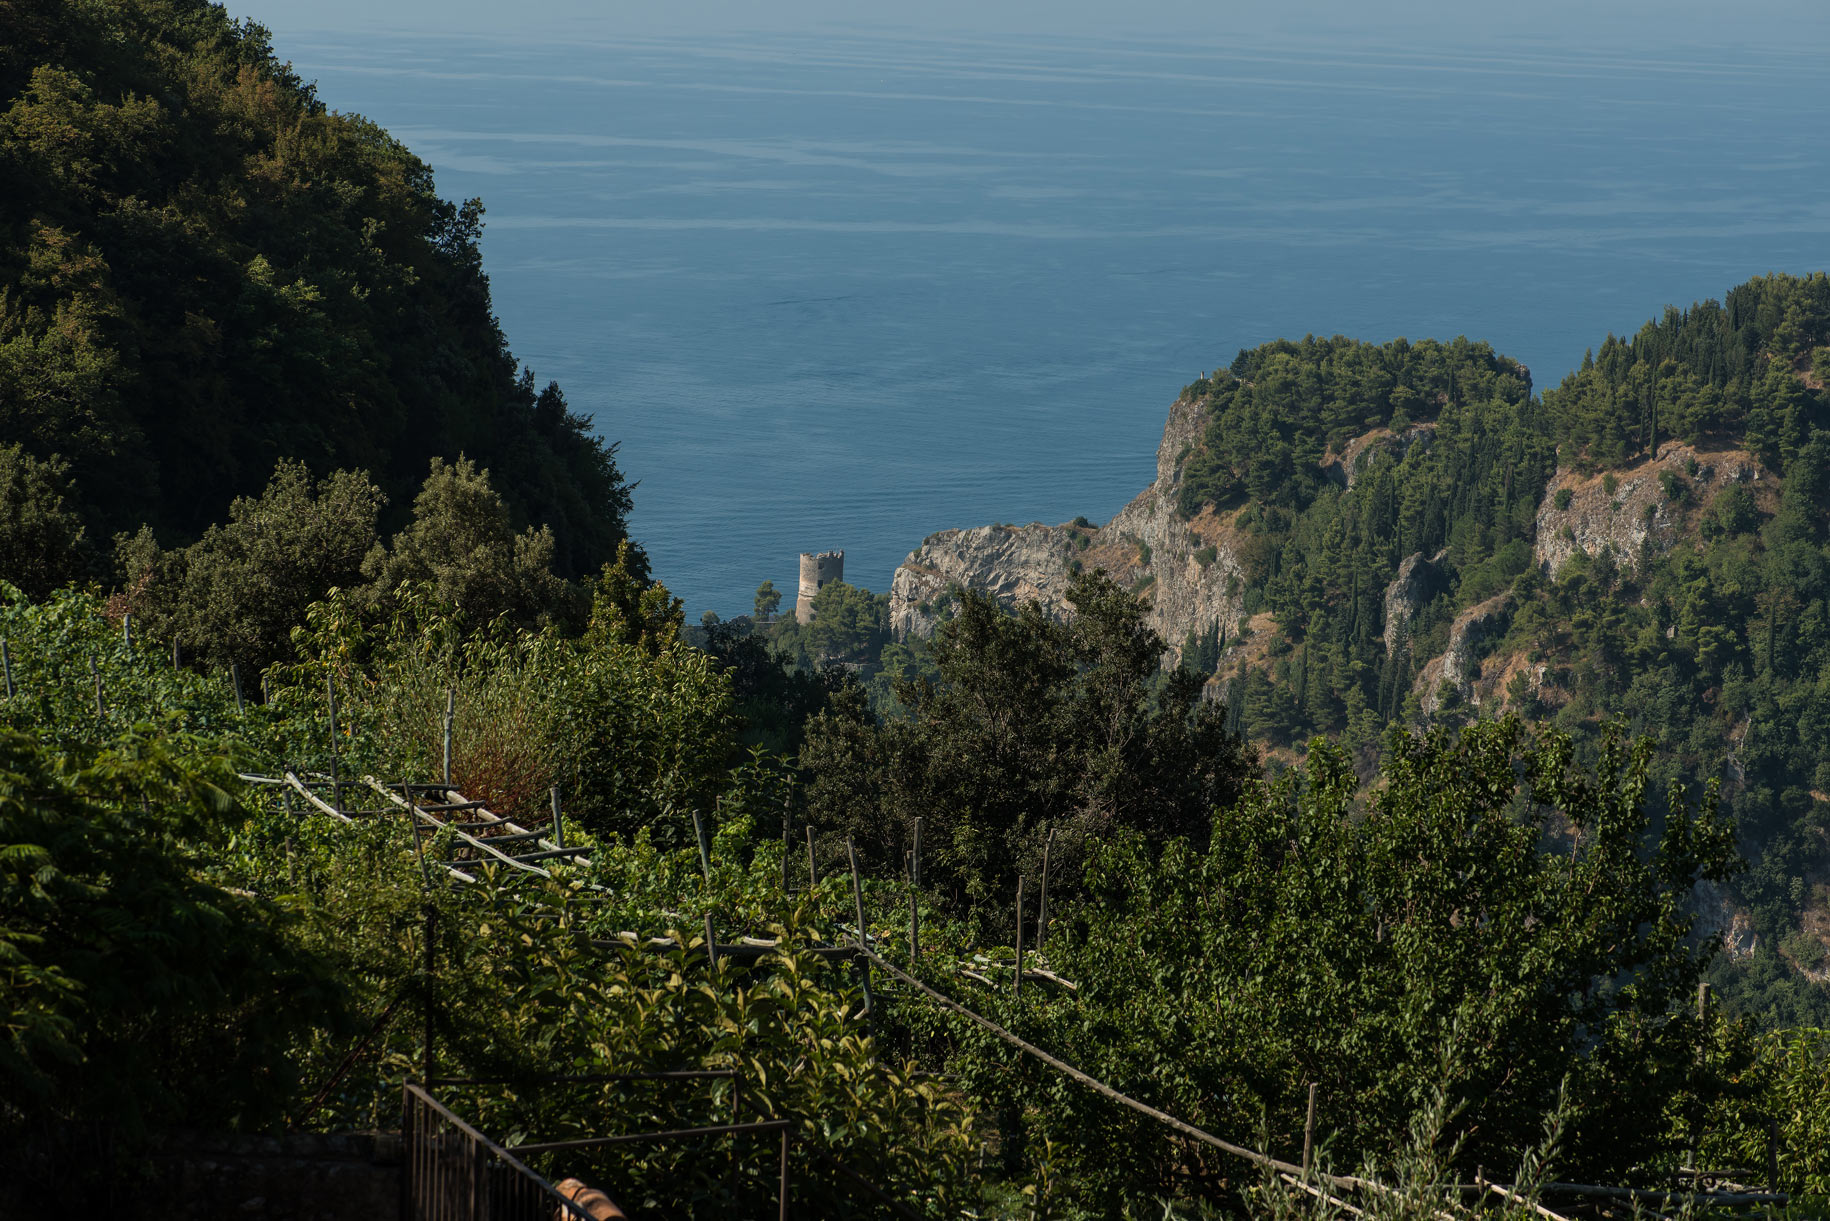 ravello coast over vines